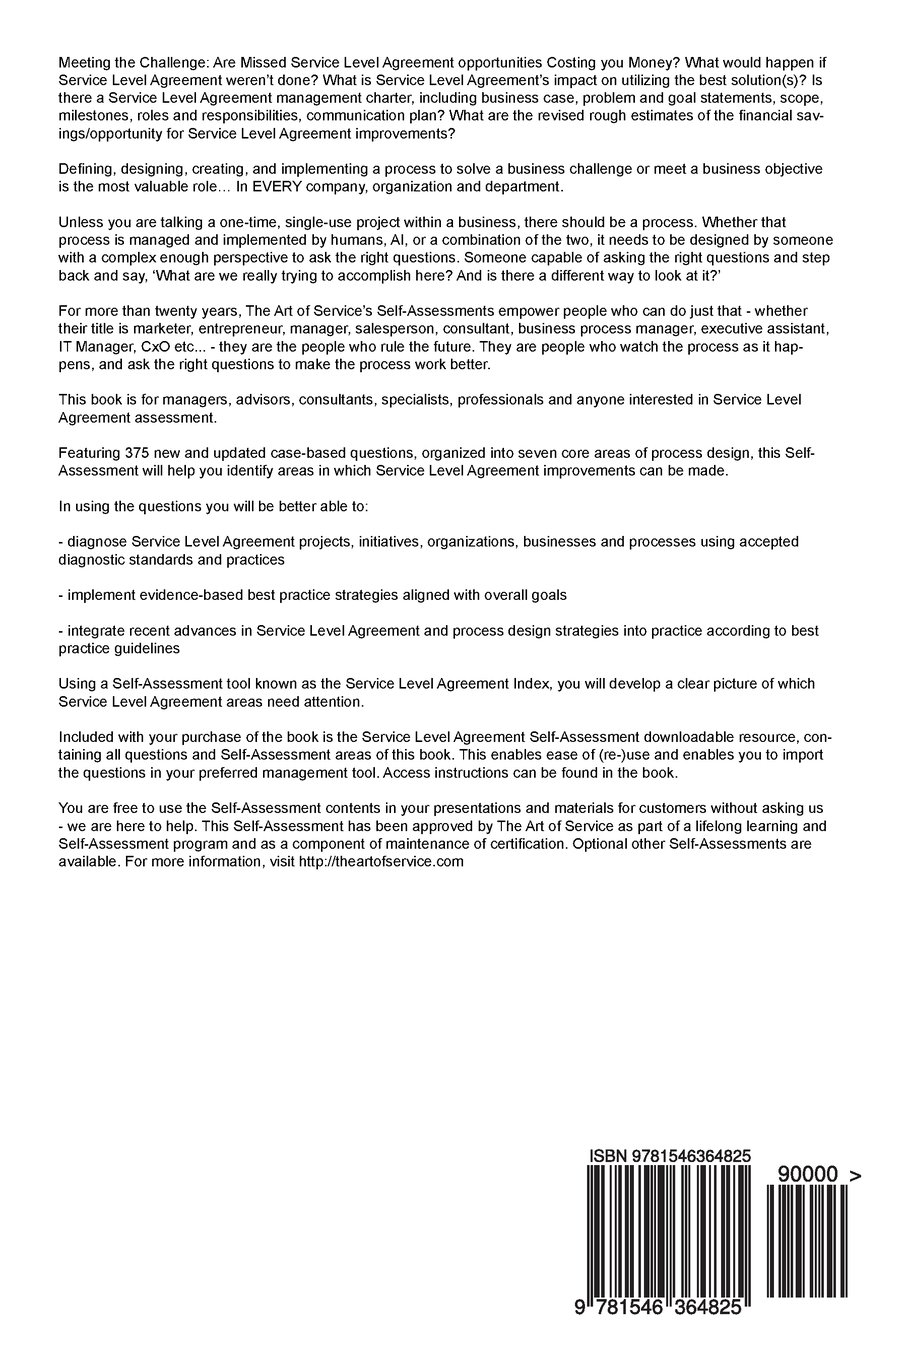 Service Level Agreement Complete Self-Assessment Guide: Gerardus